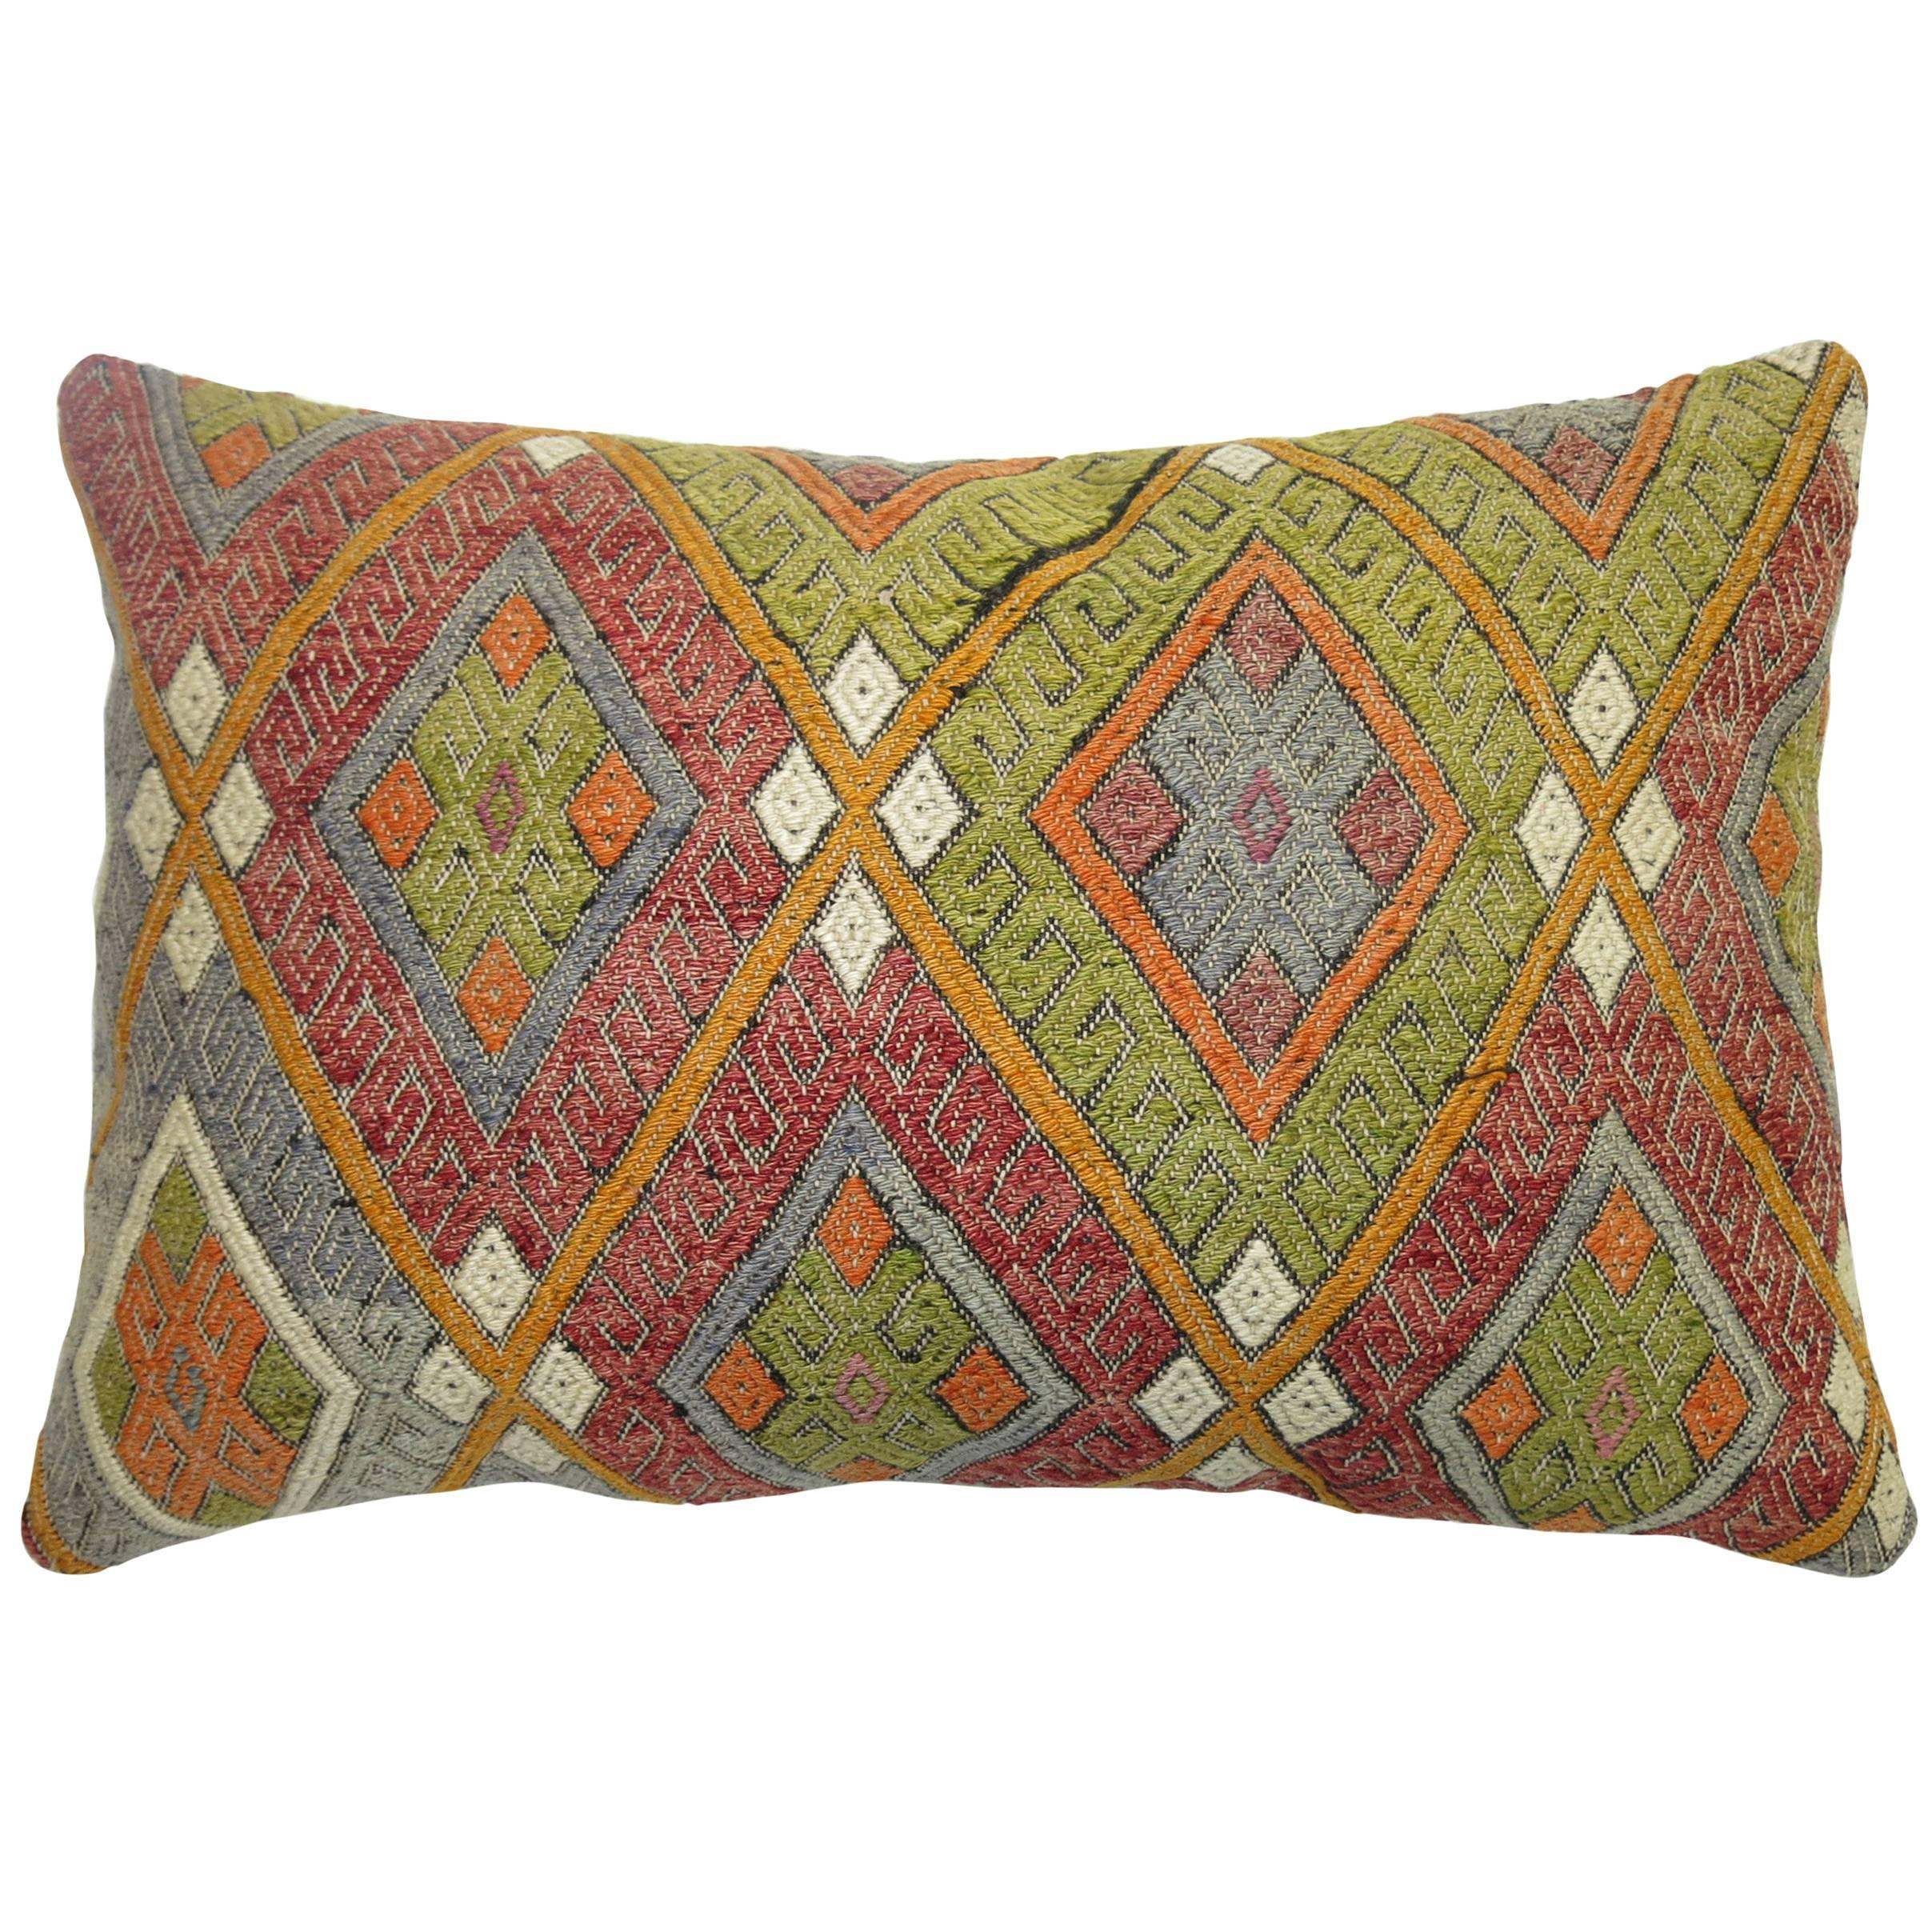 Colorful Large Vintage Hand-Knotted Kilim Pillow